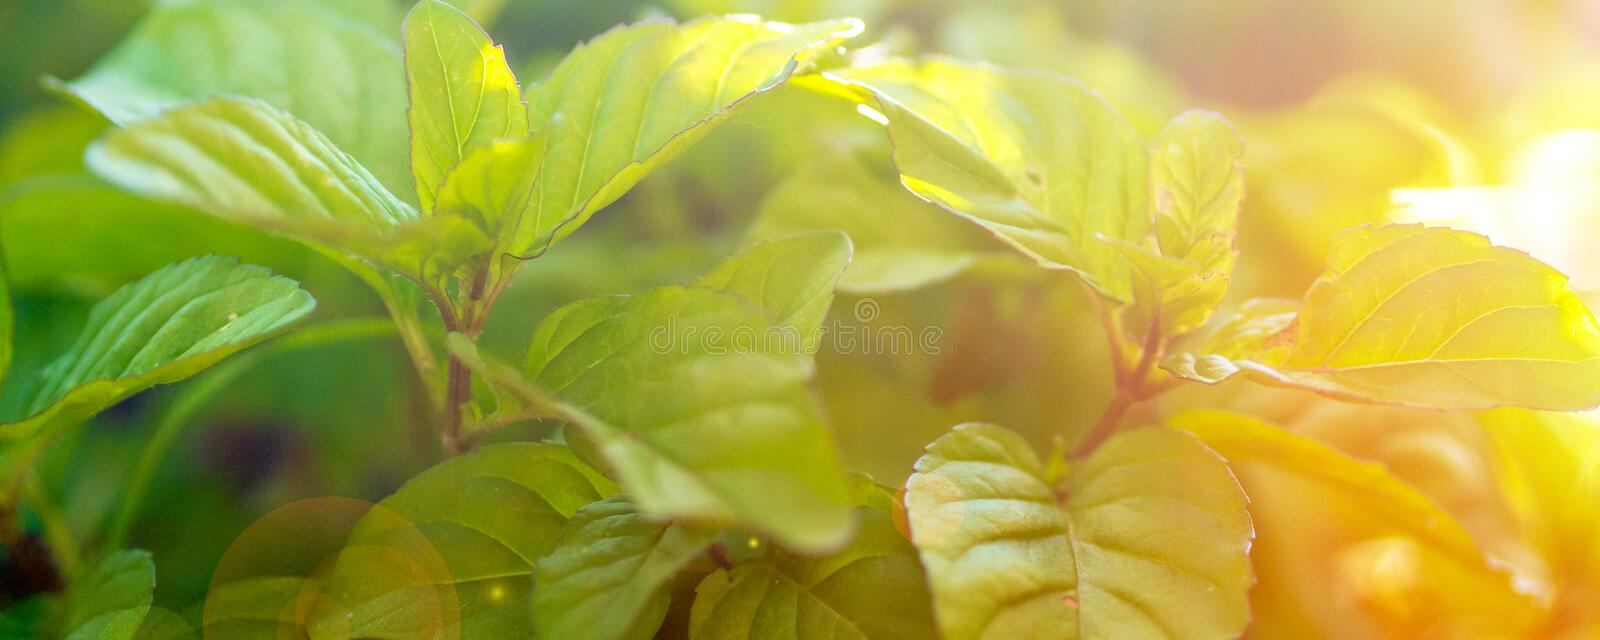 Green fresh leaf of mint, morocco type mint closeup shot. Mint leaf texture, leaf pattern, with sunset sunrise atmosphere. Green fresh leaf of mint, morocco type royalty free stock photo